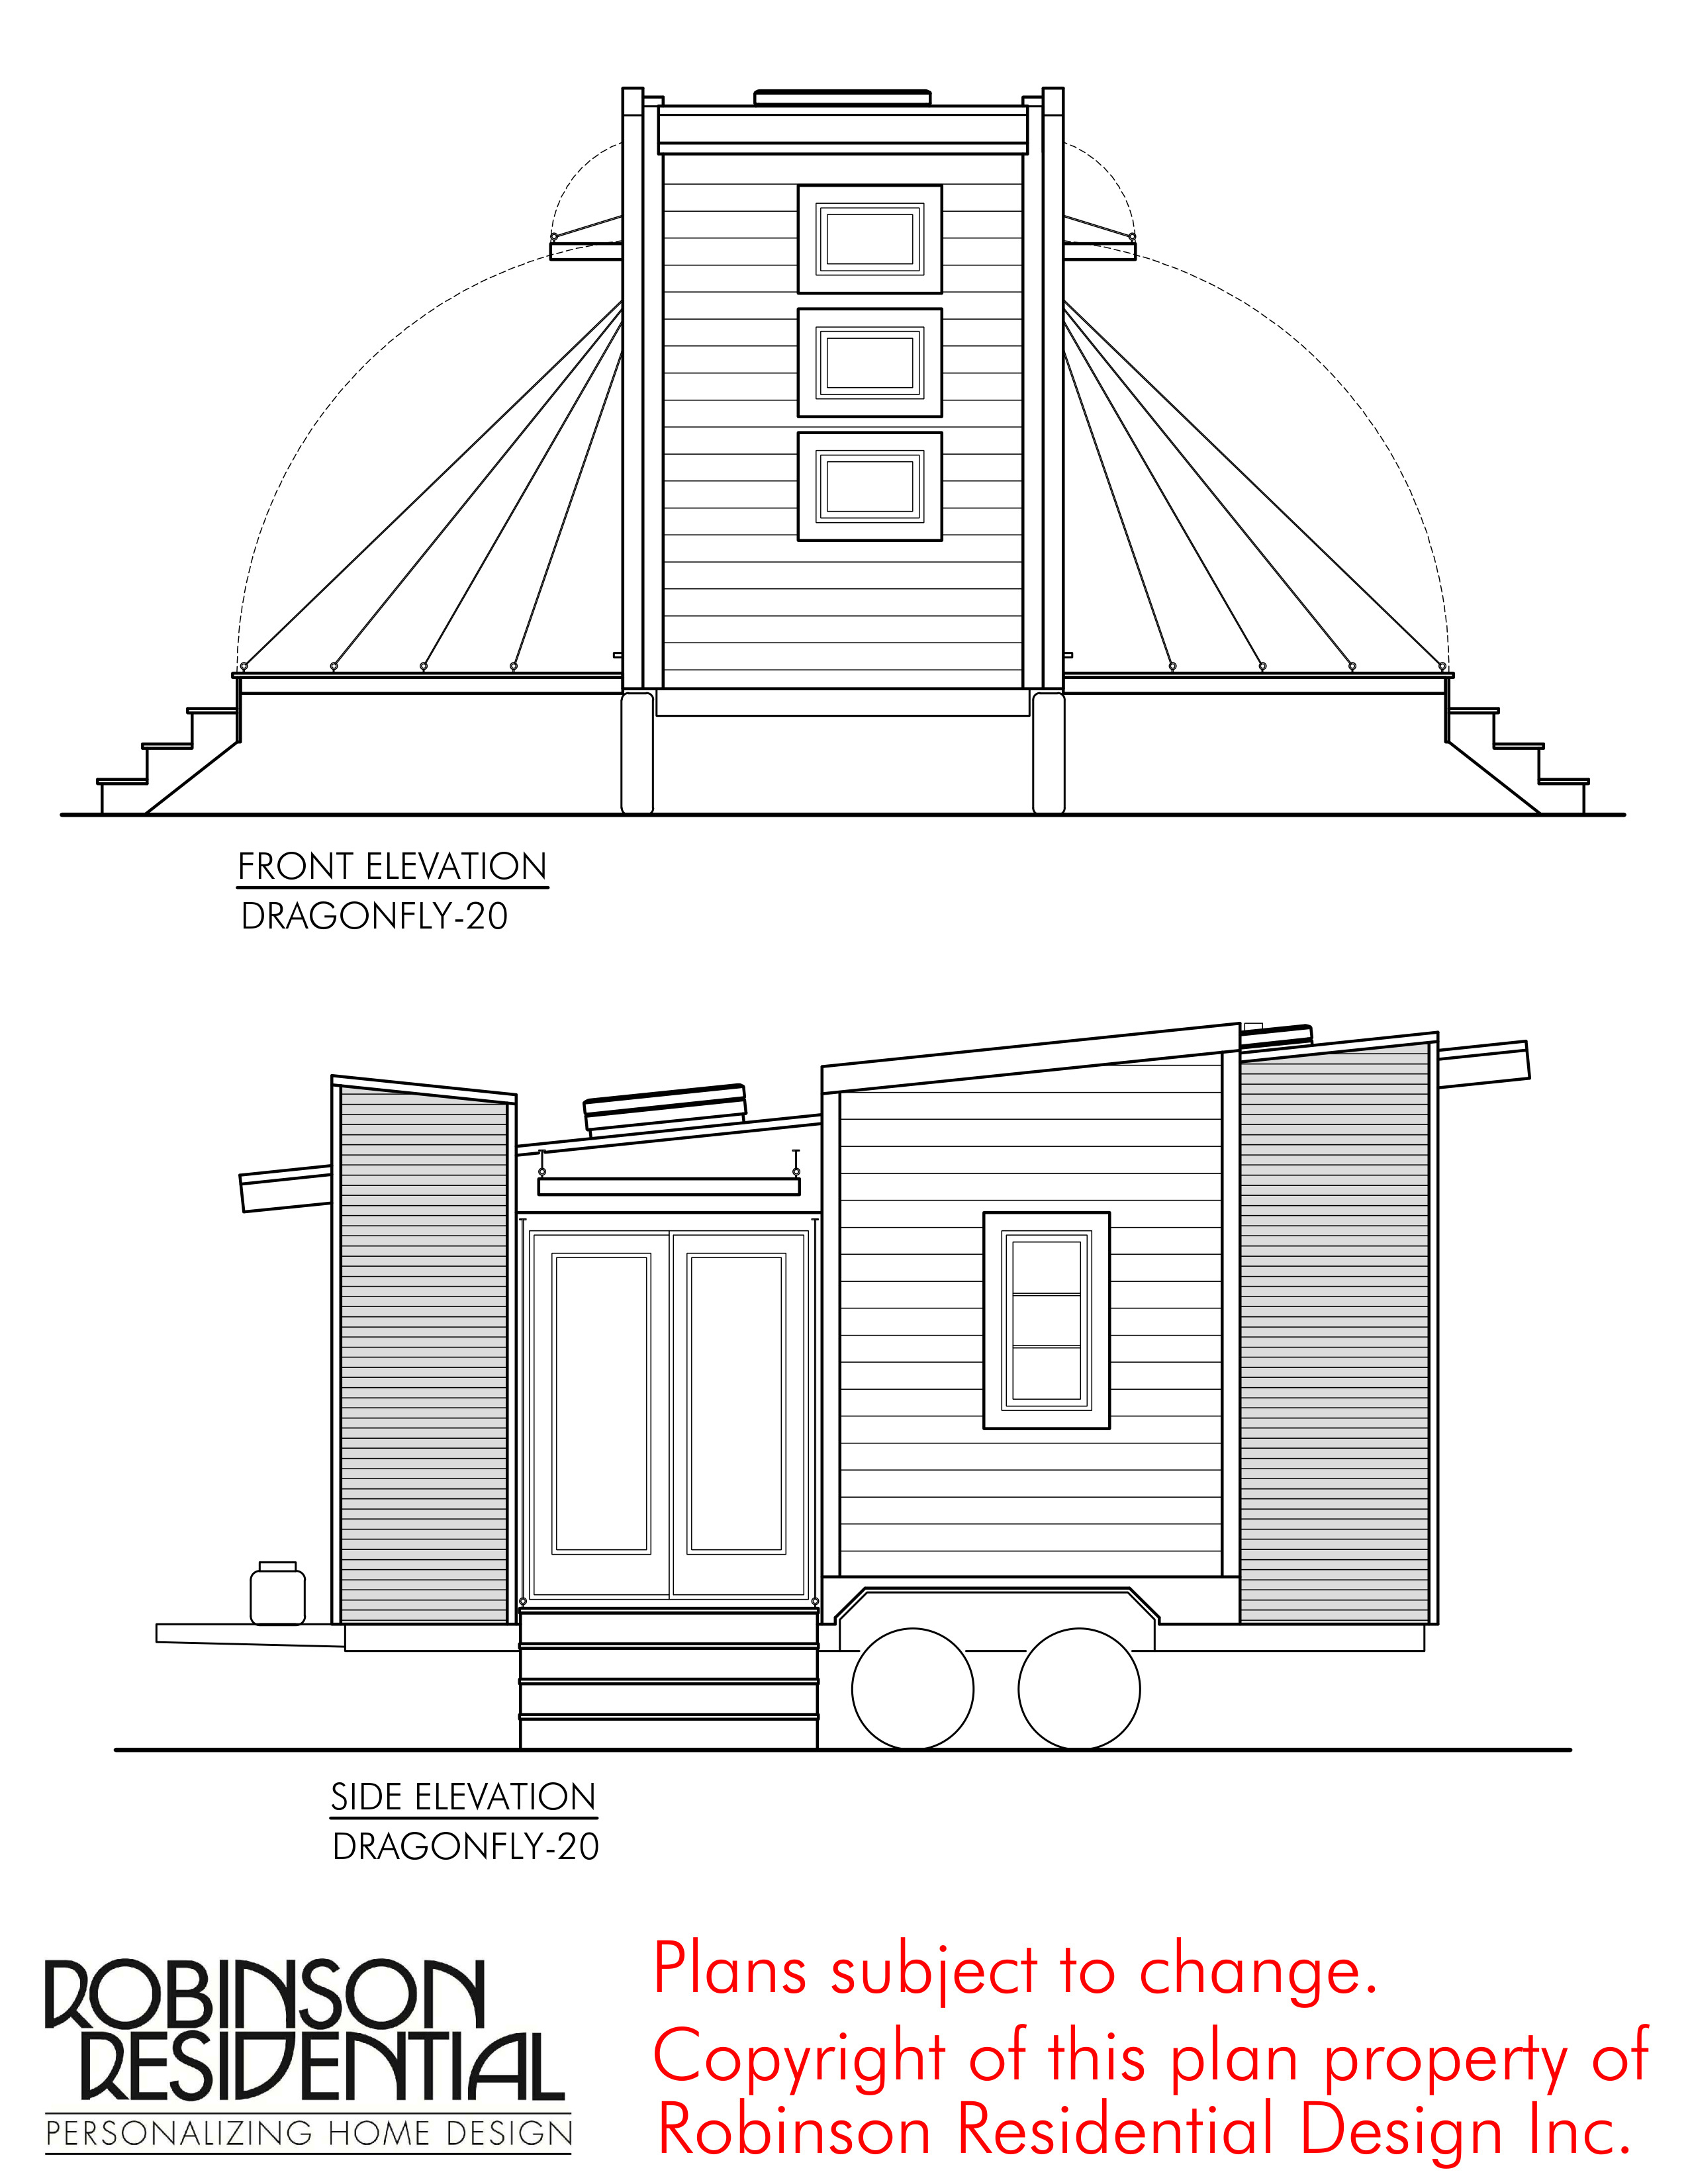 CONTEMPORARY TINY HOUSE PLANS DRAGONFLY 20 02 ELEVATIONS